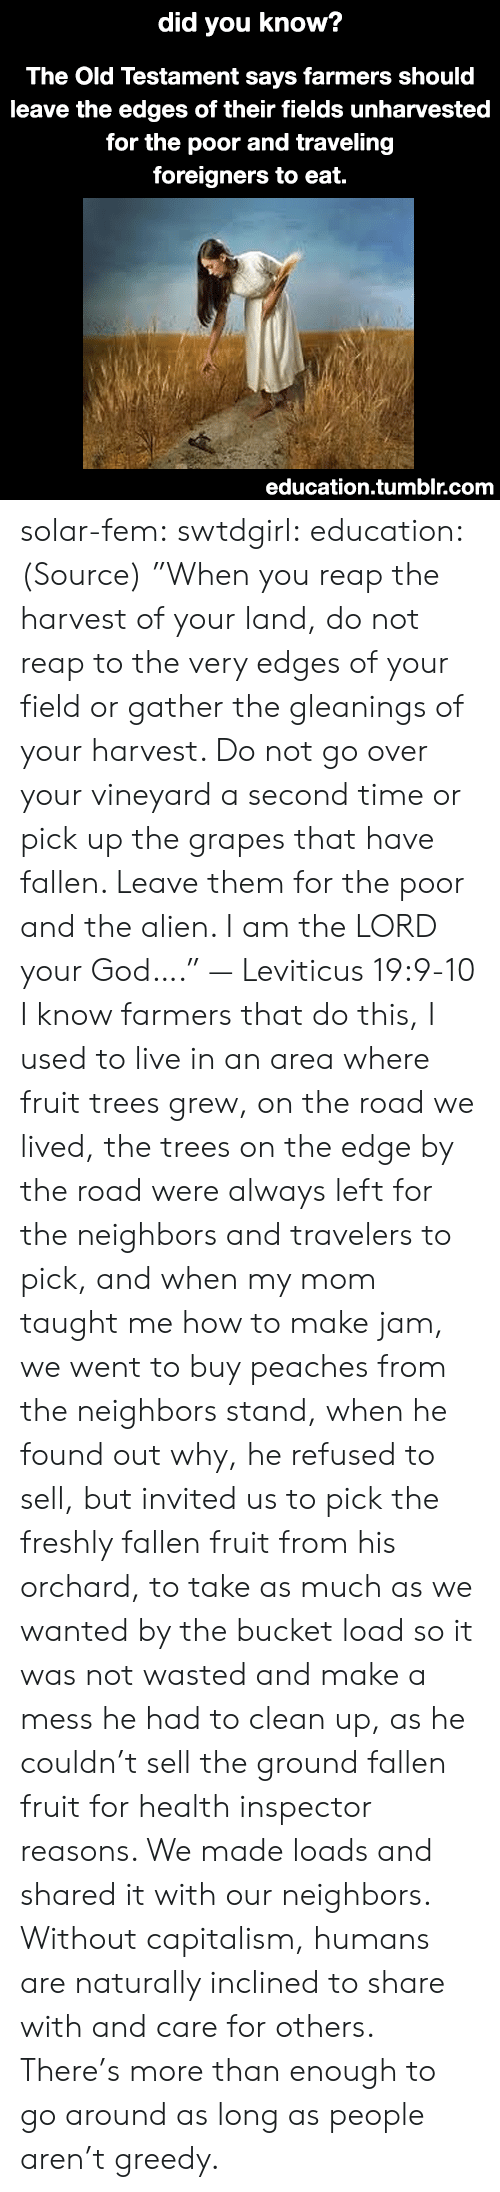 "God, Tumblr, and Alien: did  you know?  The Old Testament says farmers should  leave the edges of their fields unharvested  for the poor and traveling  foreigners to eat.  education.tumblr.com solar-fem:  swtdgirl:  education:   (Source) ""When you reap the harvest of your land, do not reap to the very edges of your field or gather the gleanings of your harvest. Do not go over your vineyard a second time or pick up the grapes that have fallen. Leave them for the poor and the alien. I am the LORD your God…."" — Leviticus 19:9-10     I know farmers that do this, I used to live in an area where fruit trees grew, on the road we lived, the trees on the edge by the road were always left for the neighbors and travelers to pick, and when my mom taught me how to make jam, we went to buy peaches from the neighbors stand, when he found out why, he refused to sell, but invited us to pick the freshly fallen fruit from his orchard, to take as much as we wanted by the bucket load so it was not wasted and make a mess he had to clean up, as he couldn't sell the ground fallen fruit for health inspector reasons. We made loads and shared it with our neighbors.  Without capitalism, humans are naturally inclined to share with and care for others. There's more than enough to go around as long as people aren't greedy."